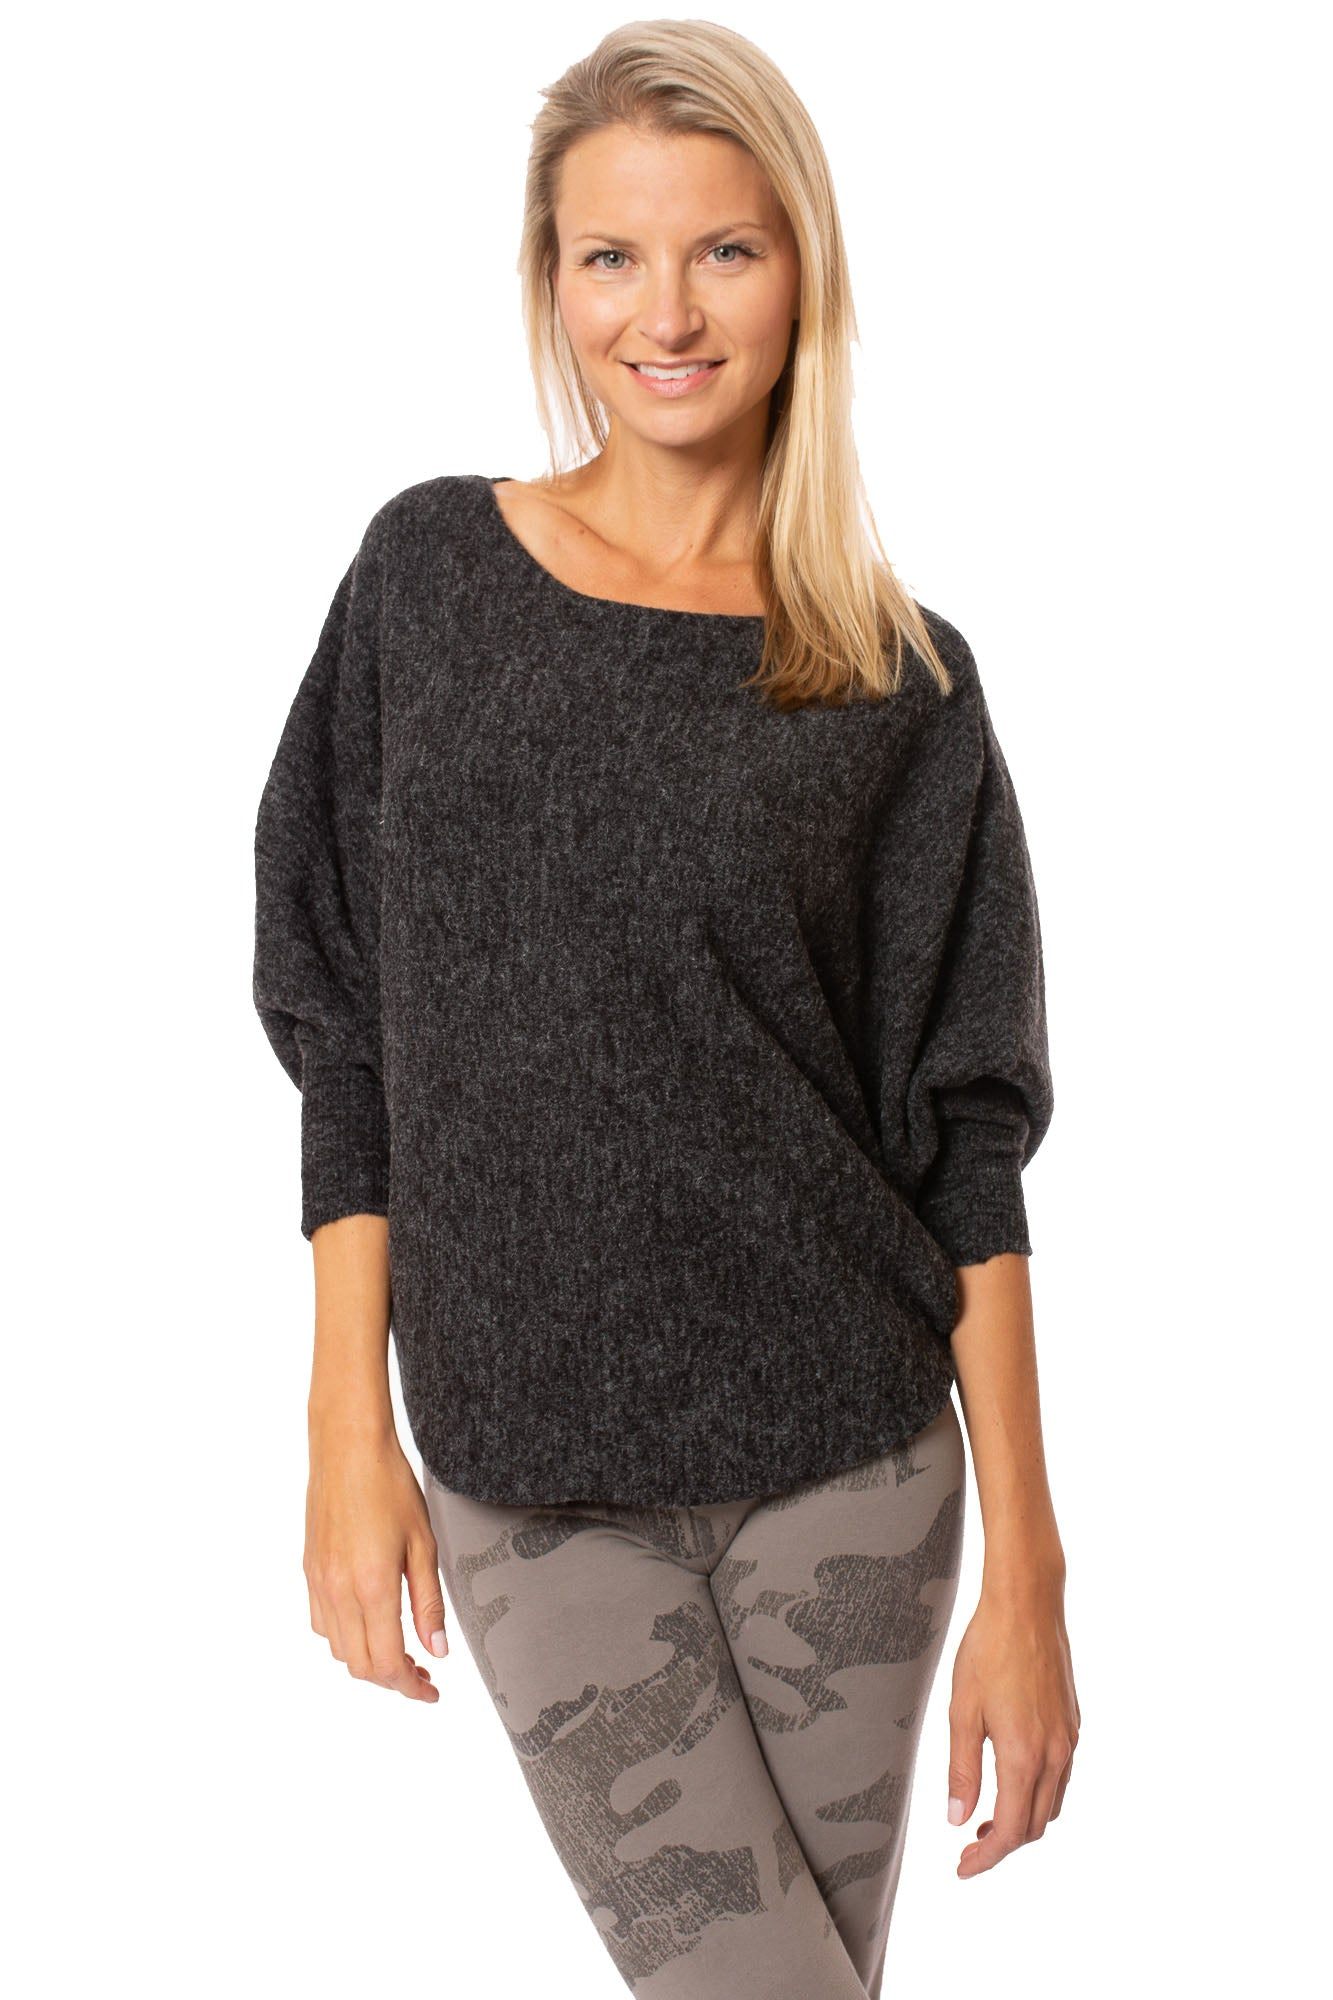 Kerisma - Dolman Sleeve Fuzzy Sweater (G550C, Gray/Black)